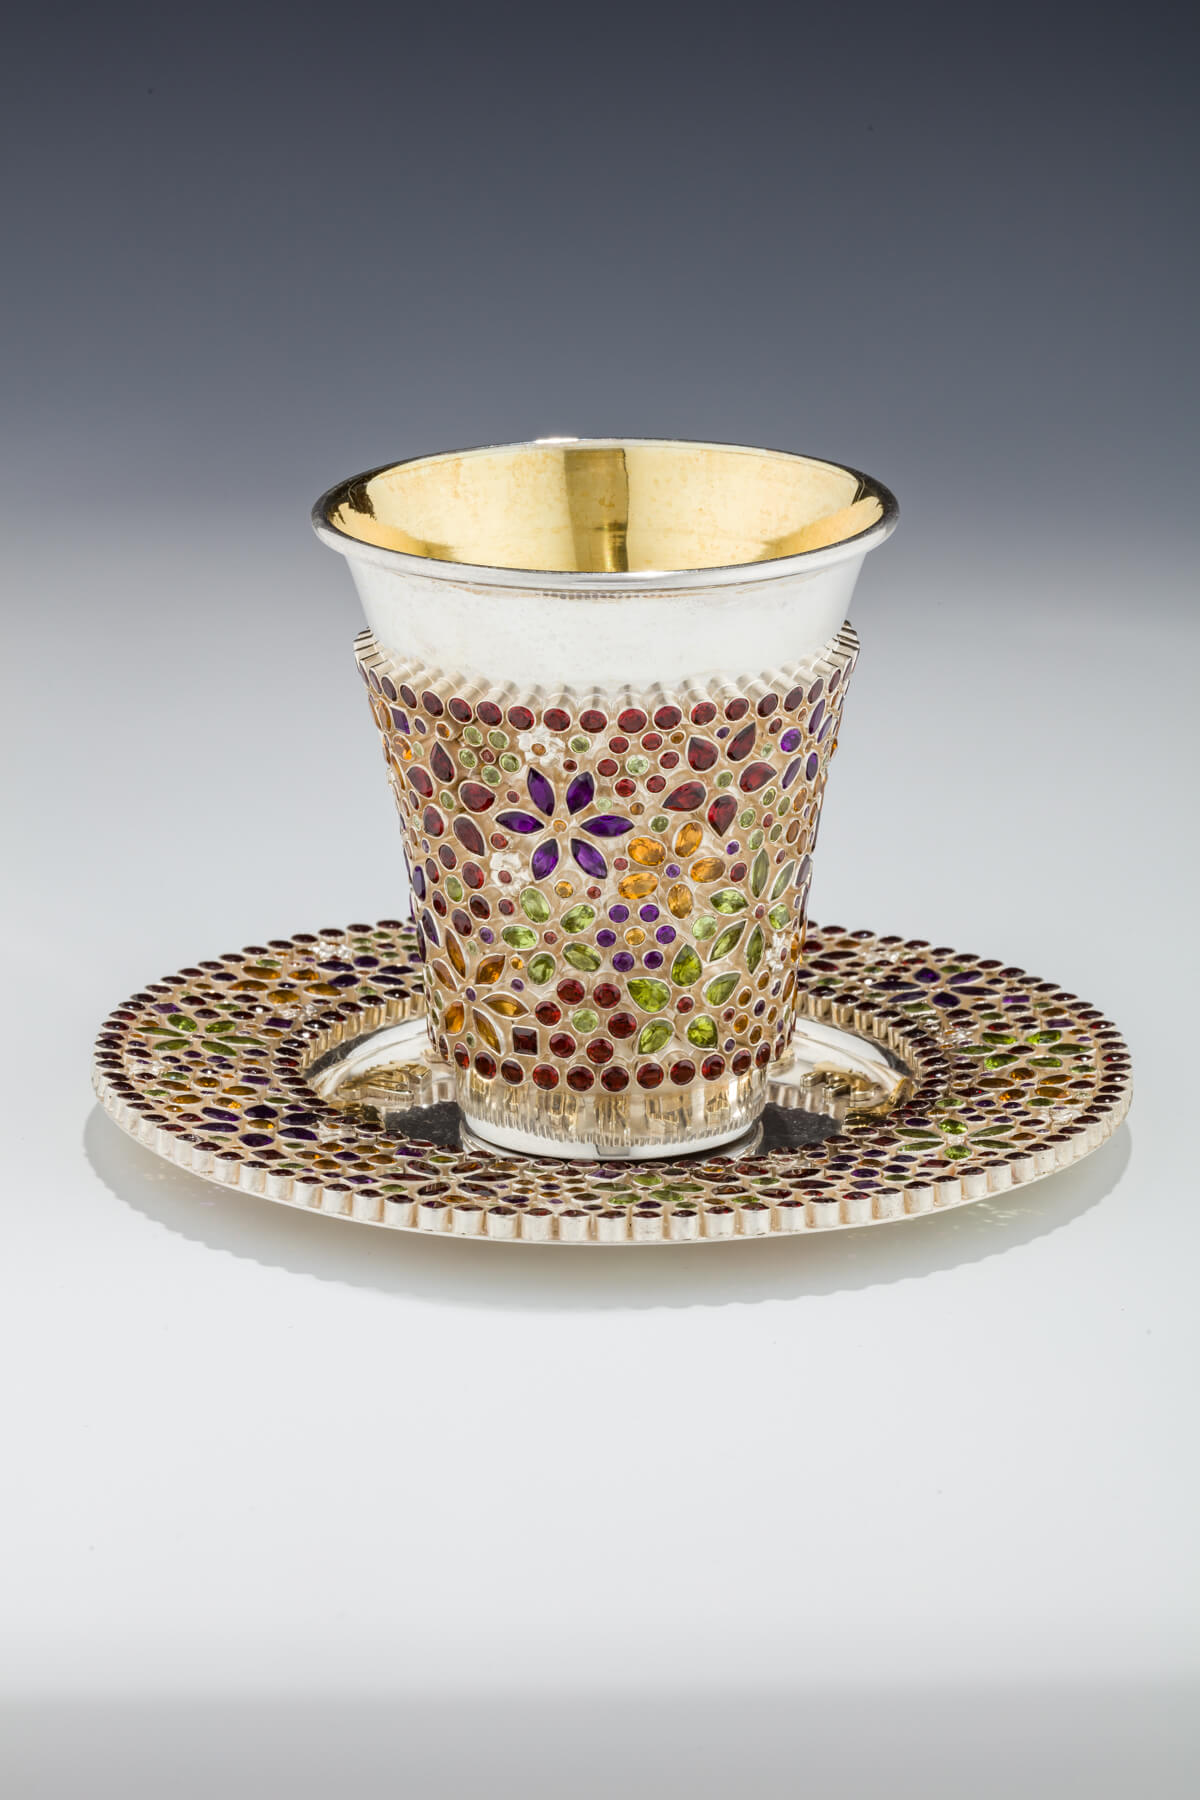 116. A Gem-Encrusted Kiddush Cup and Underplate by Dekel Aviv